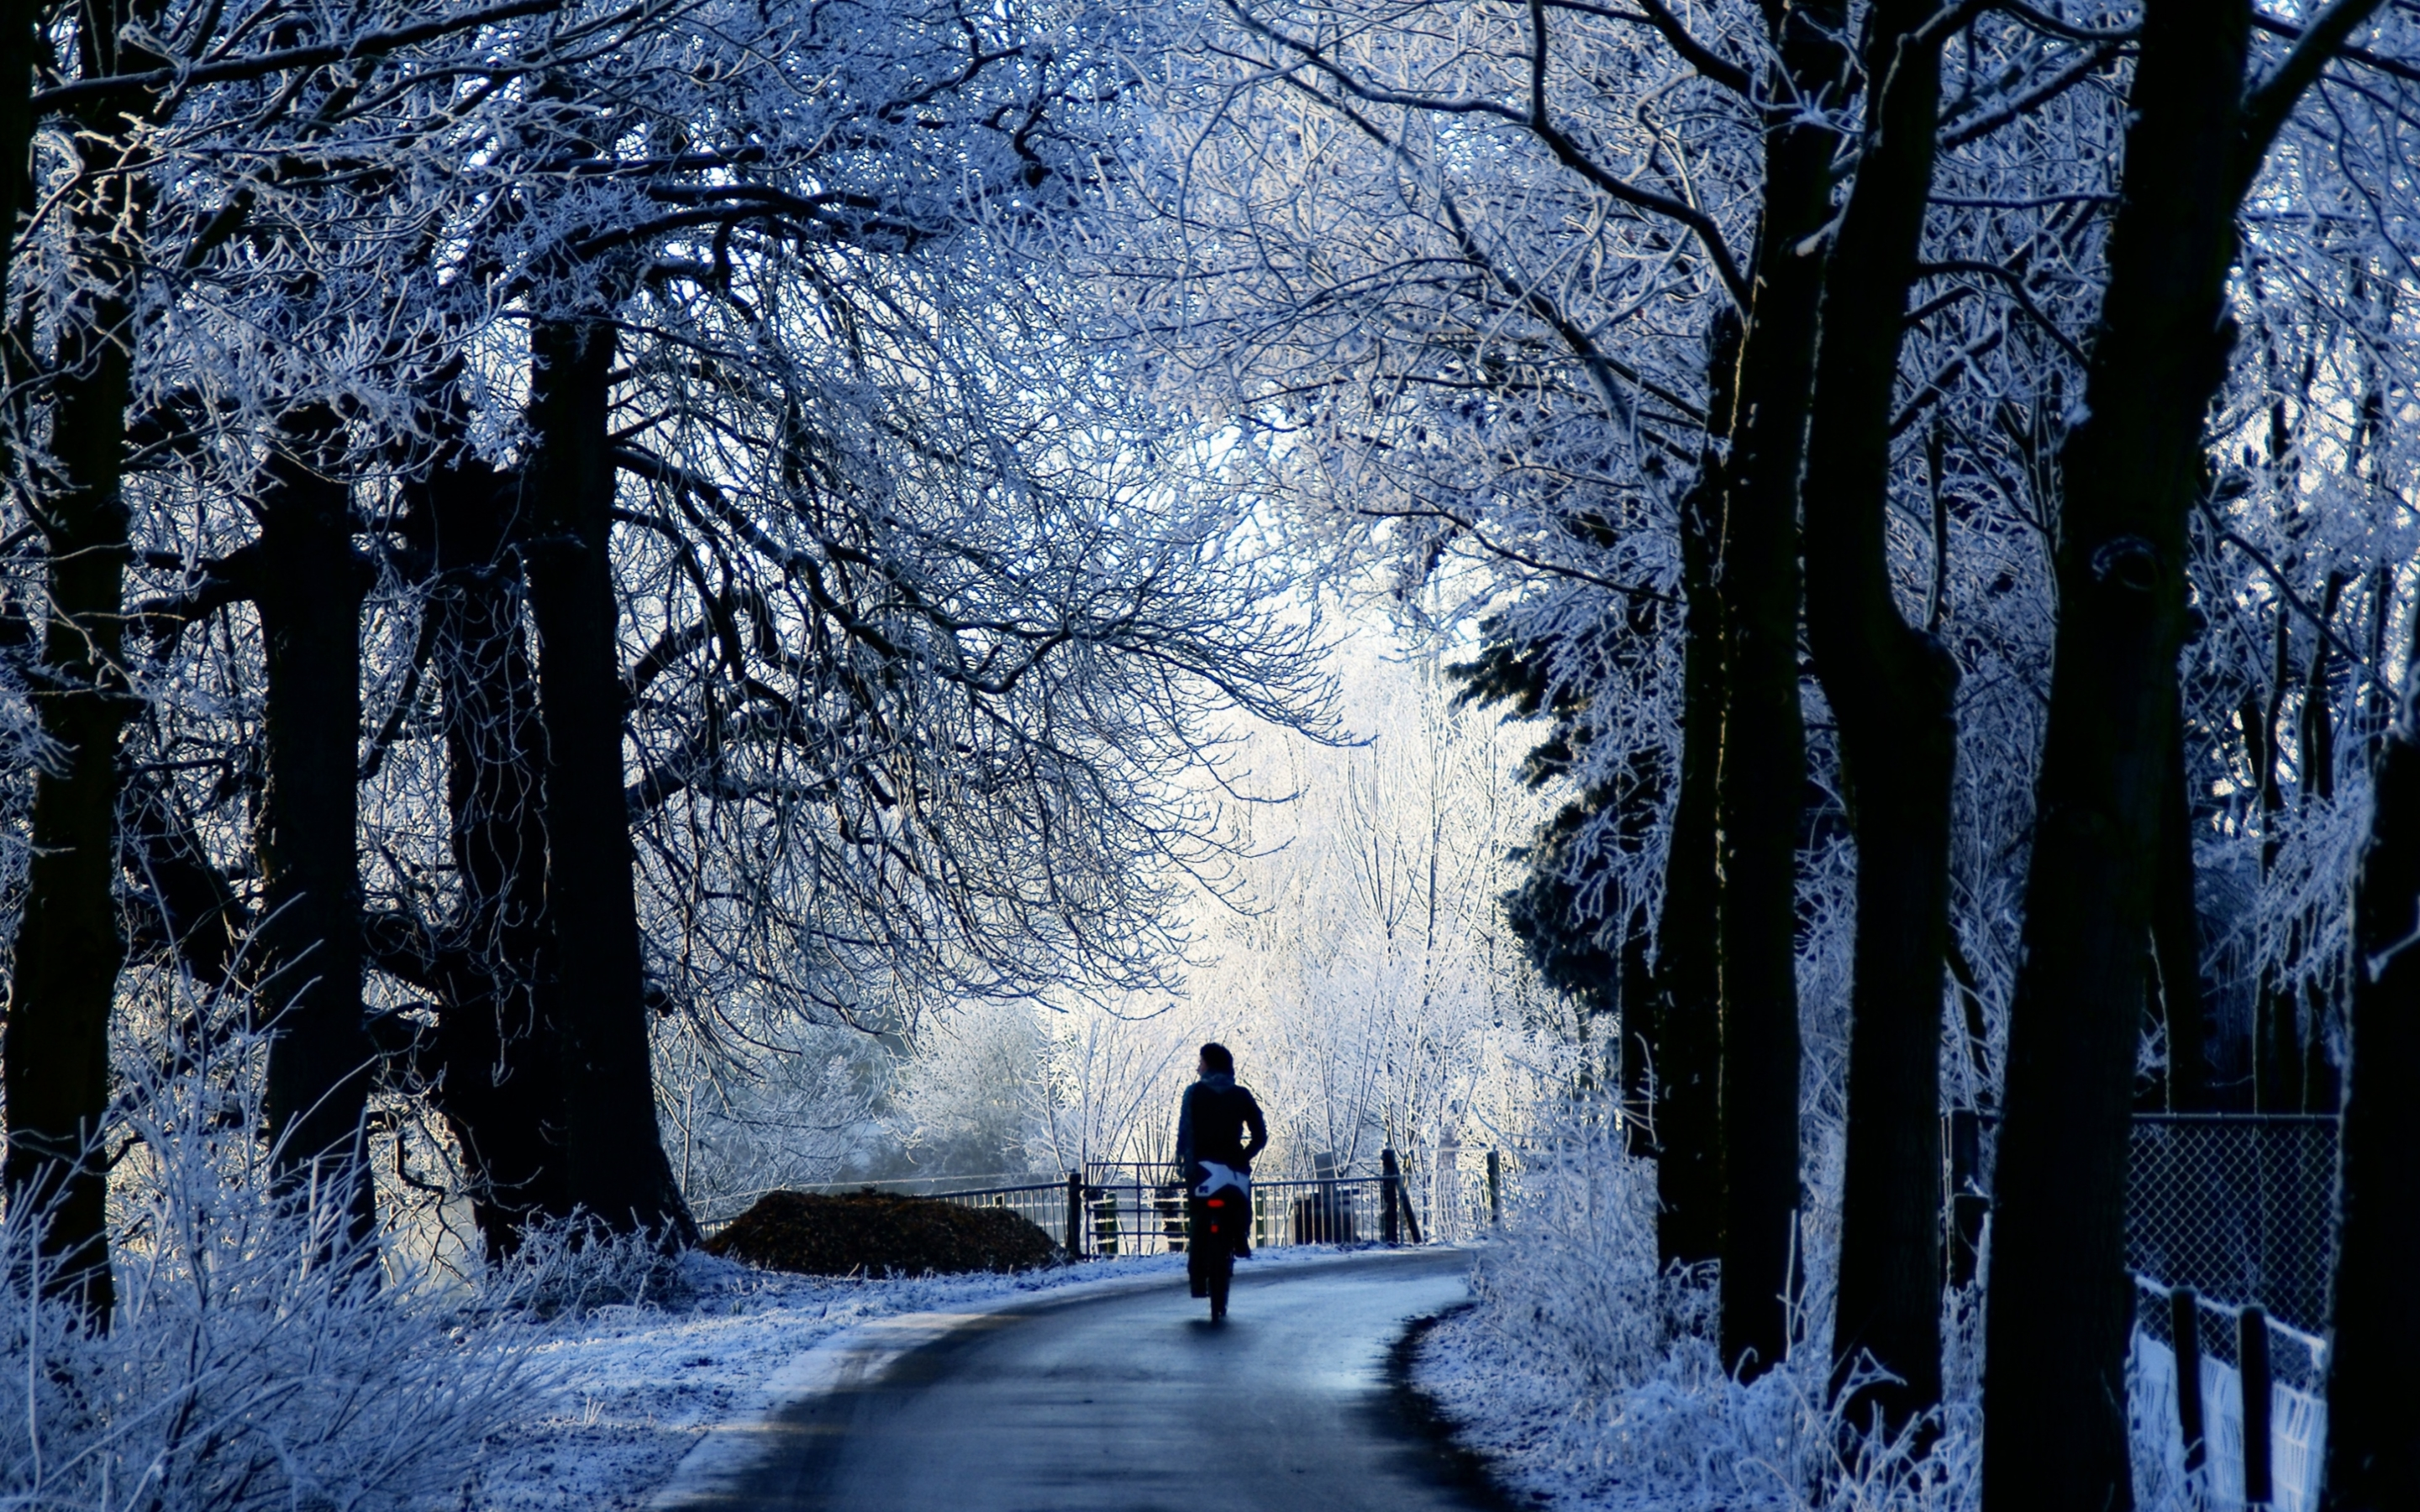 Winter Road Scene Mac Wallpaper Download Mac Wallpapers 2880x1800